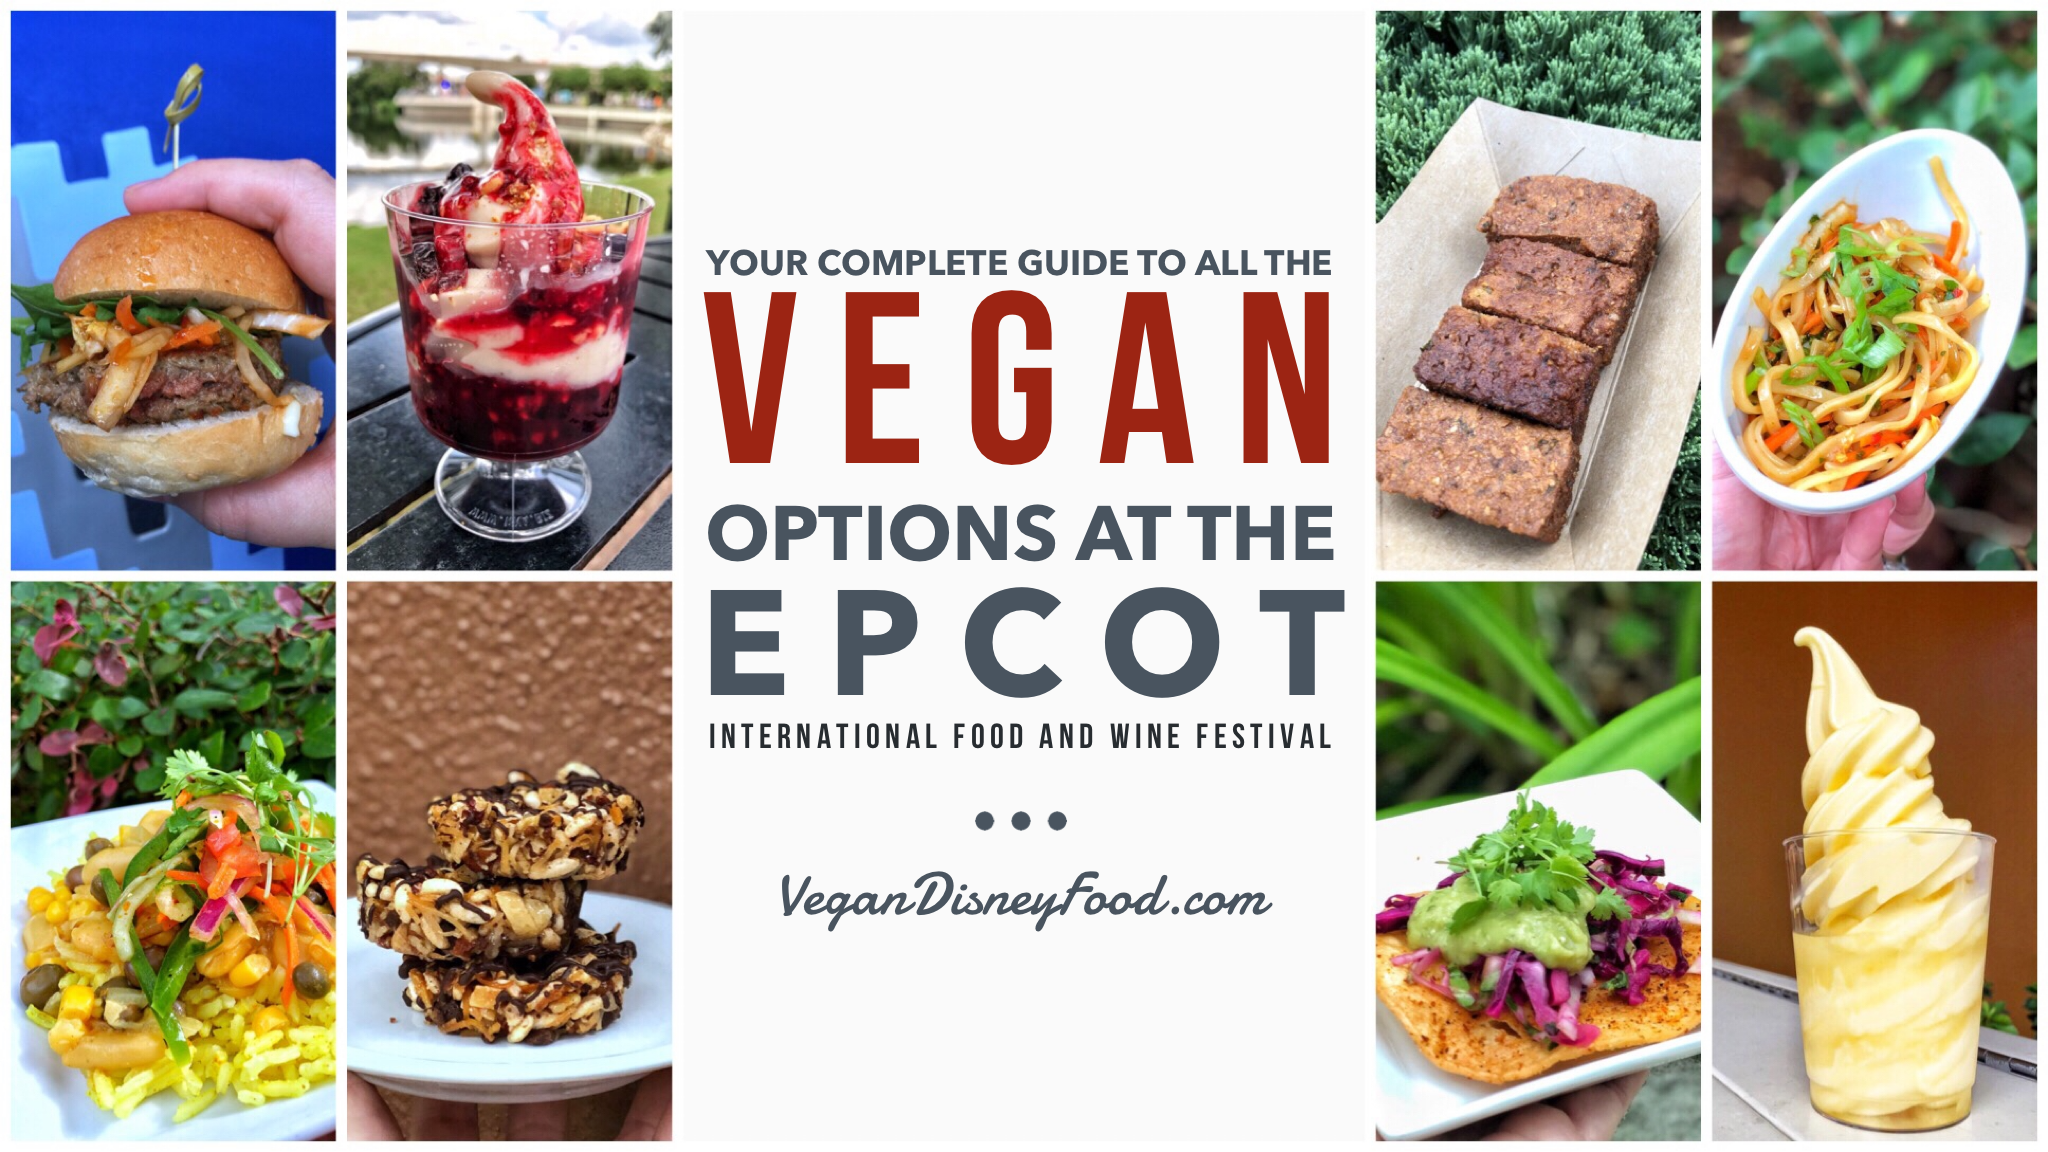 Your Complete Guide to All the Vegan Options at the Epcot International Food and Wine Festival